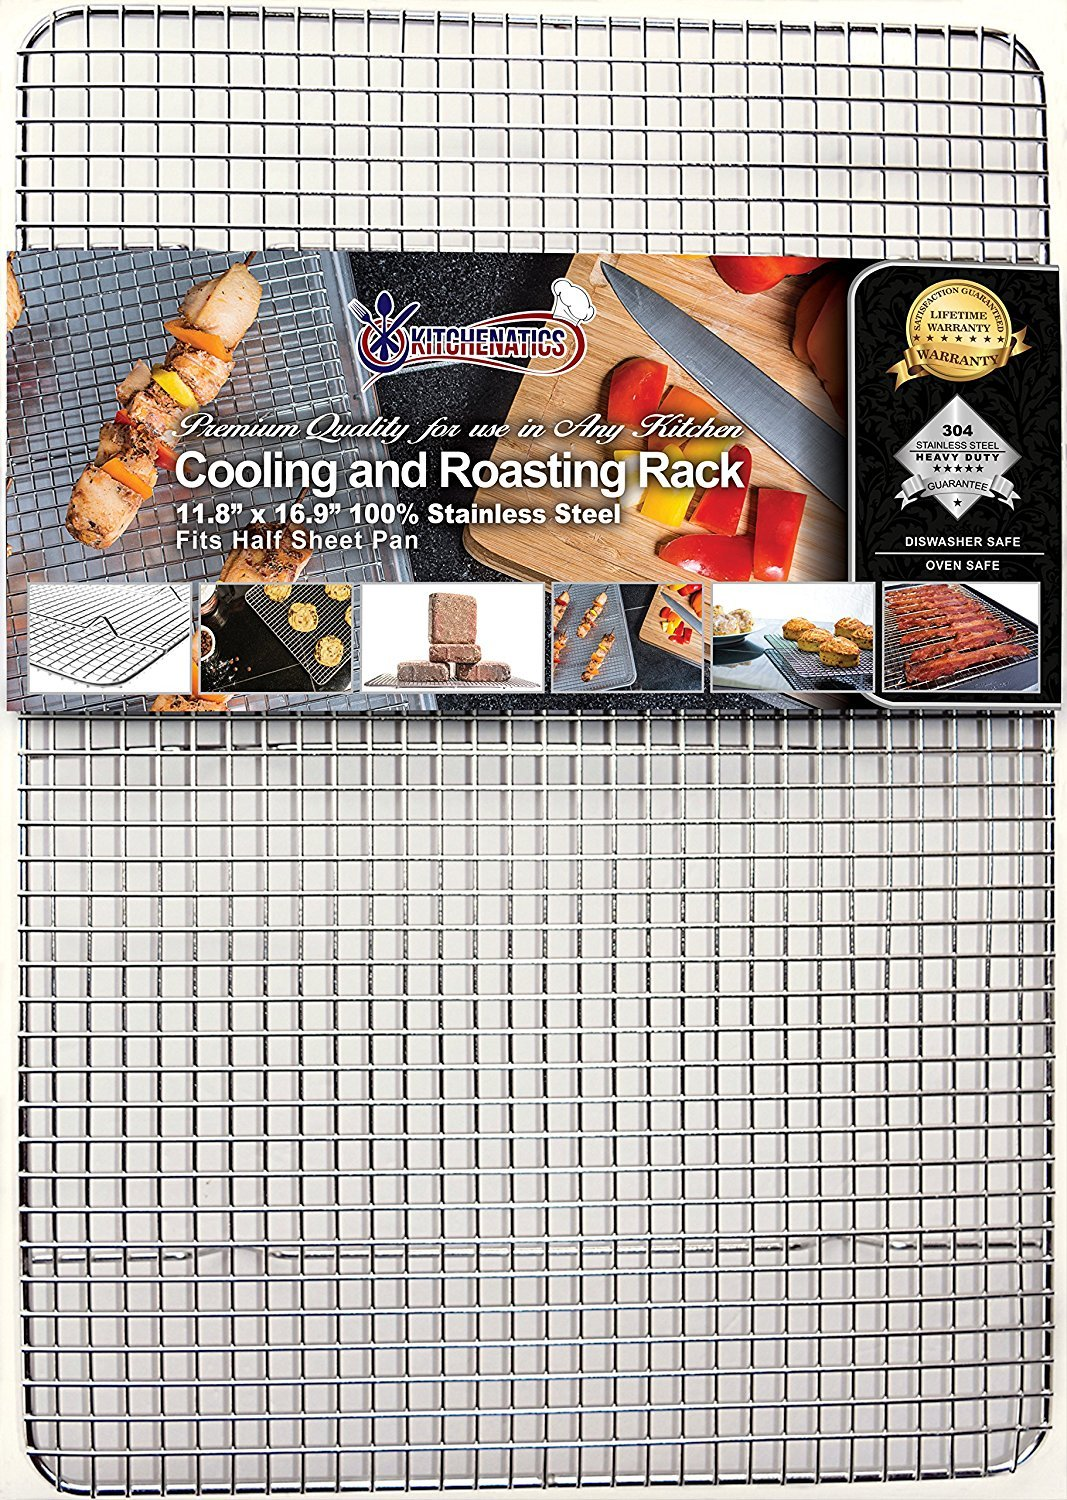 KITCHENATICS Professional Grade Stainless Steel Cooling and Roasting Wire Rack Fits Half Sheet Baking Pan for Cookies, Cakes Oven-Safe for Cooking, Smoking, Grilling, Drying - Heavy Duty Rust-Proof by KITCHENATICS